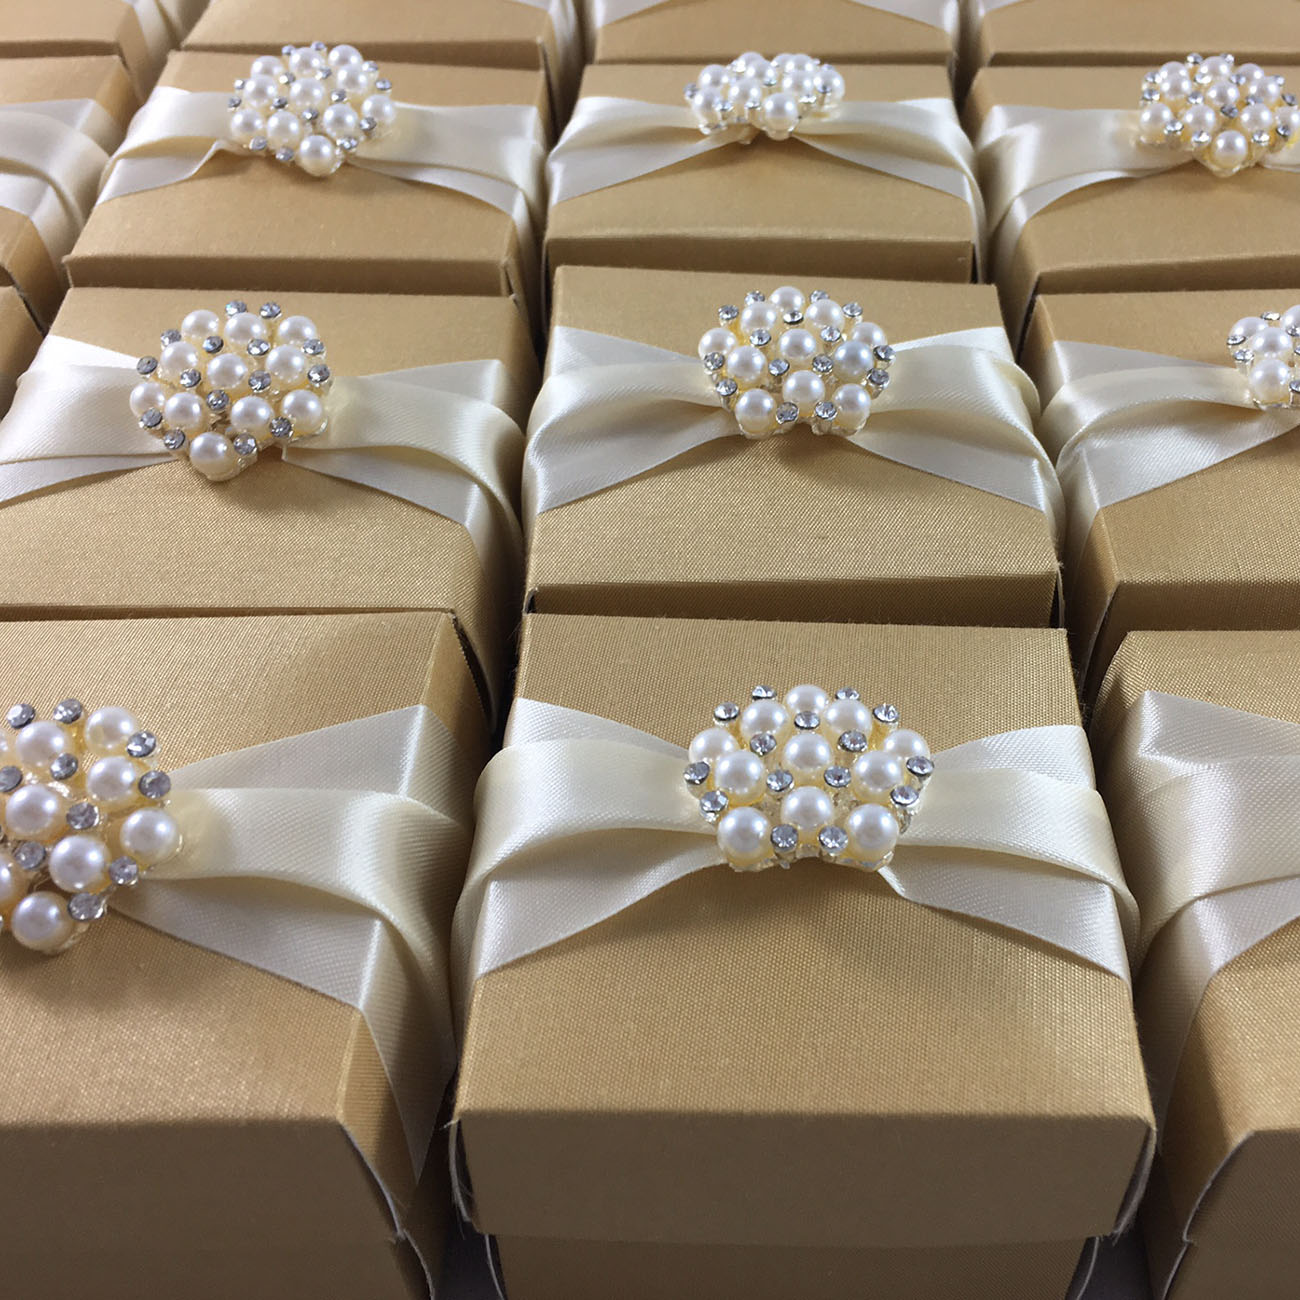 Golden Favour Boxes With pearl Brooch